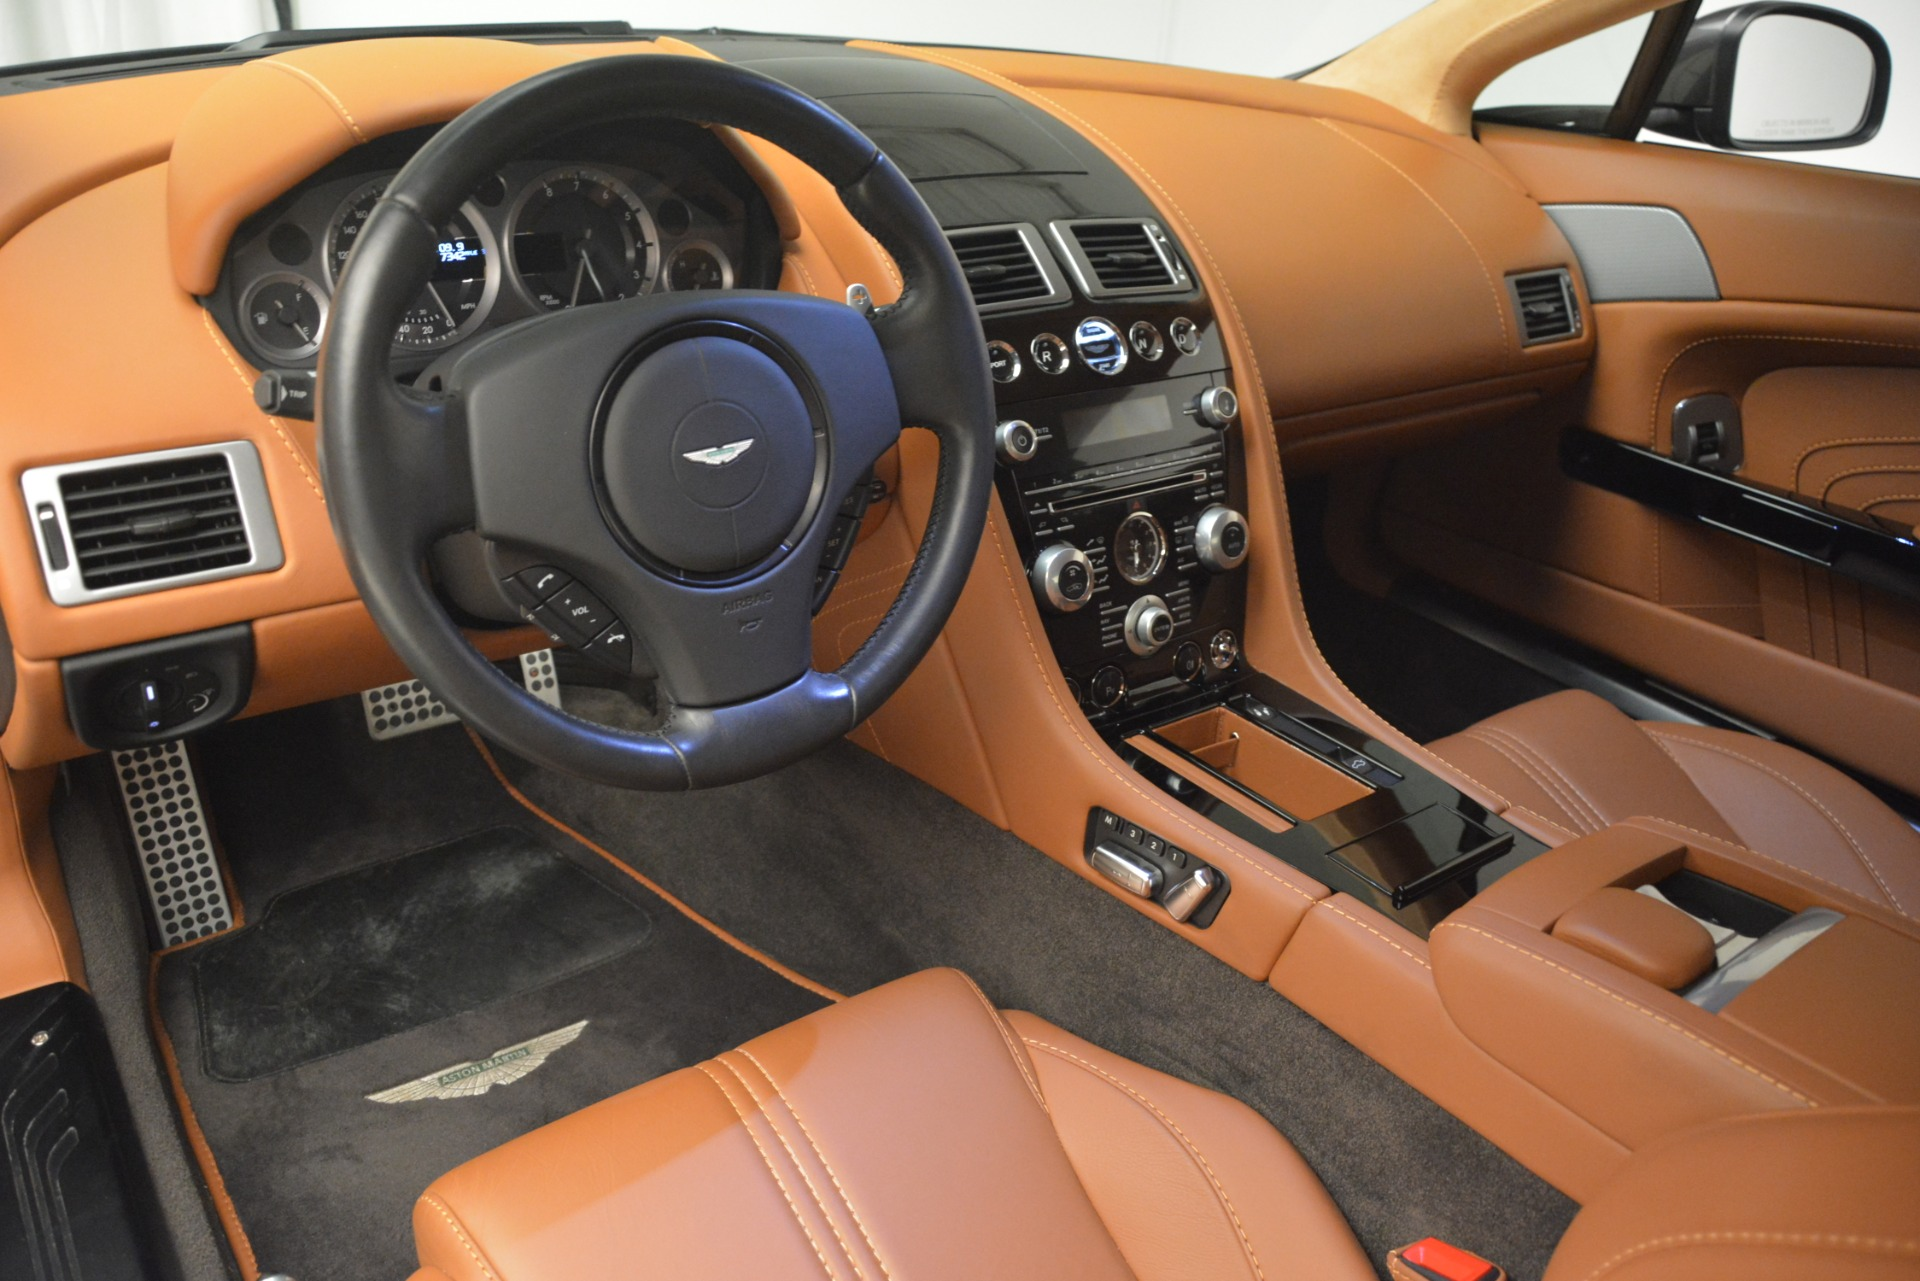 Used 2012 Aston Martin V8 Vantage S Coupe For Sale In Westport, CT 2951_p14